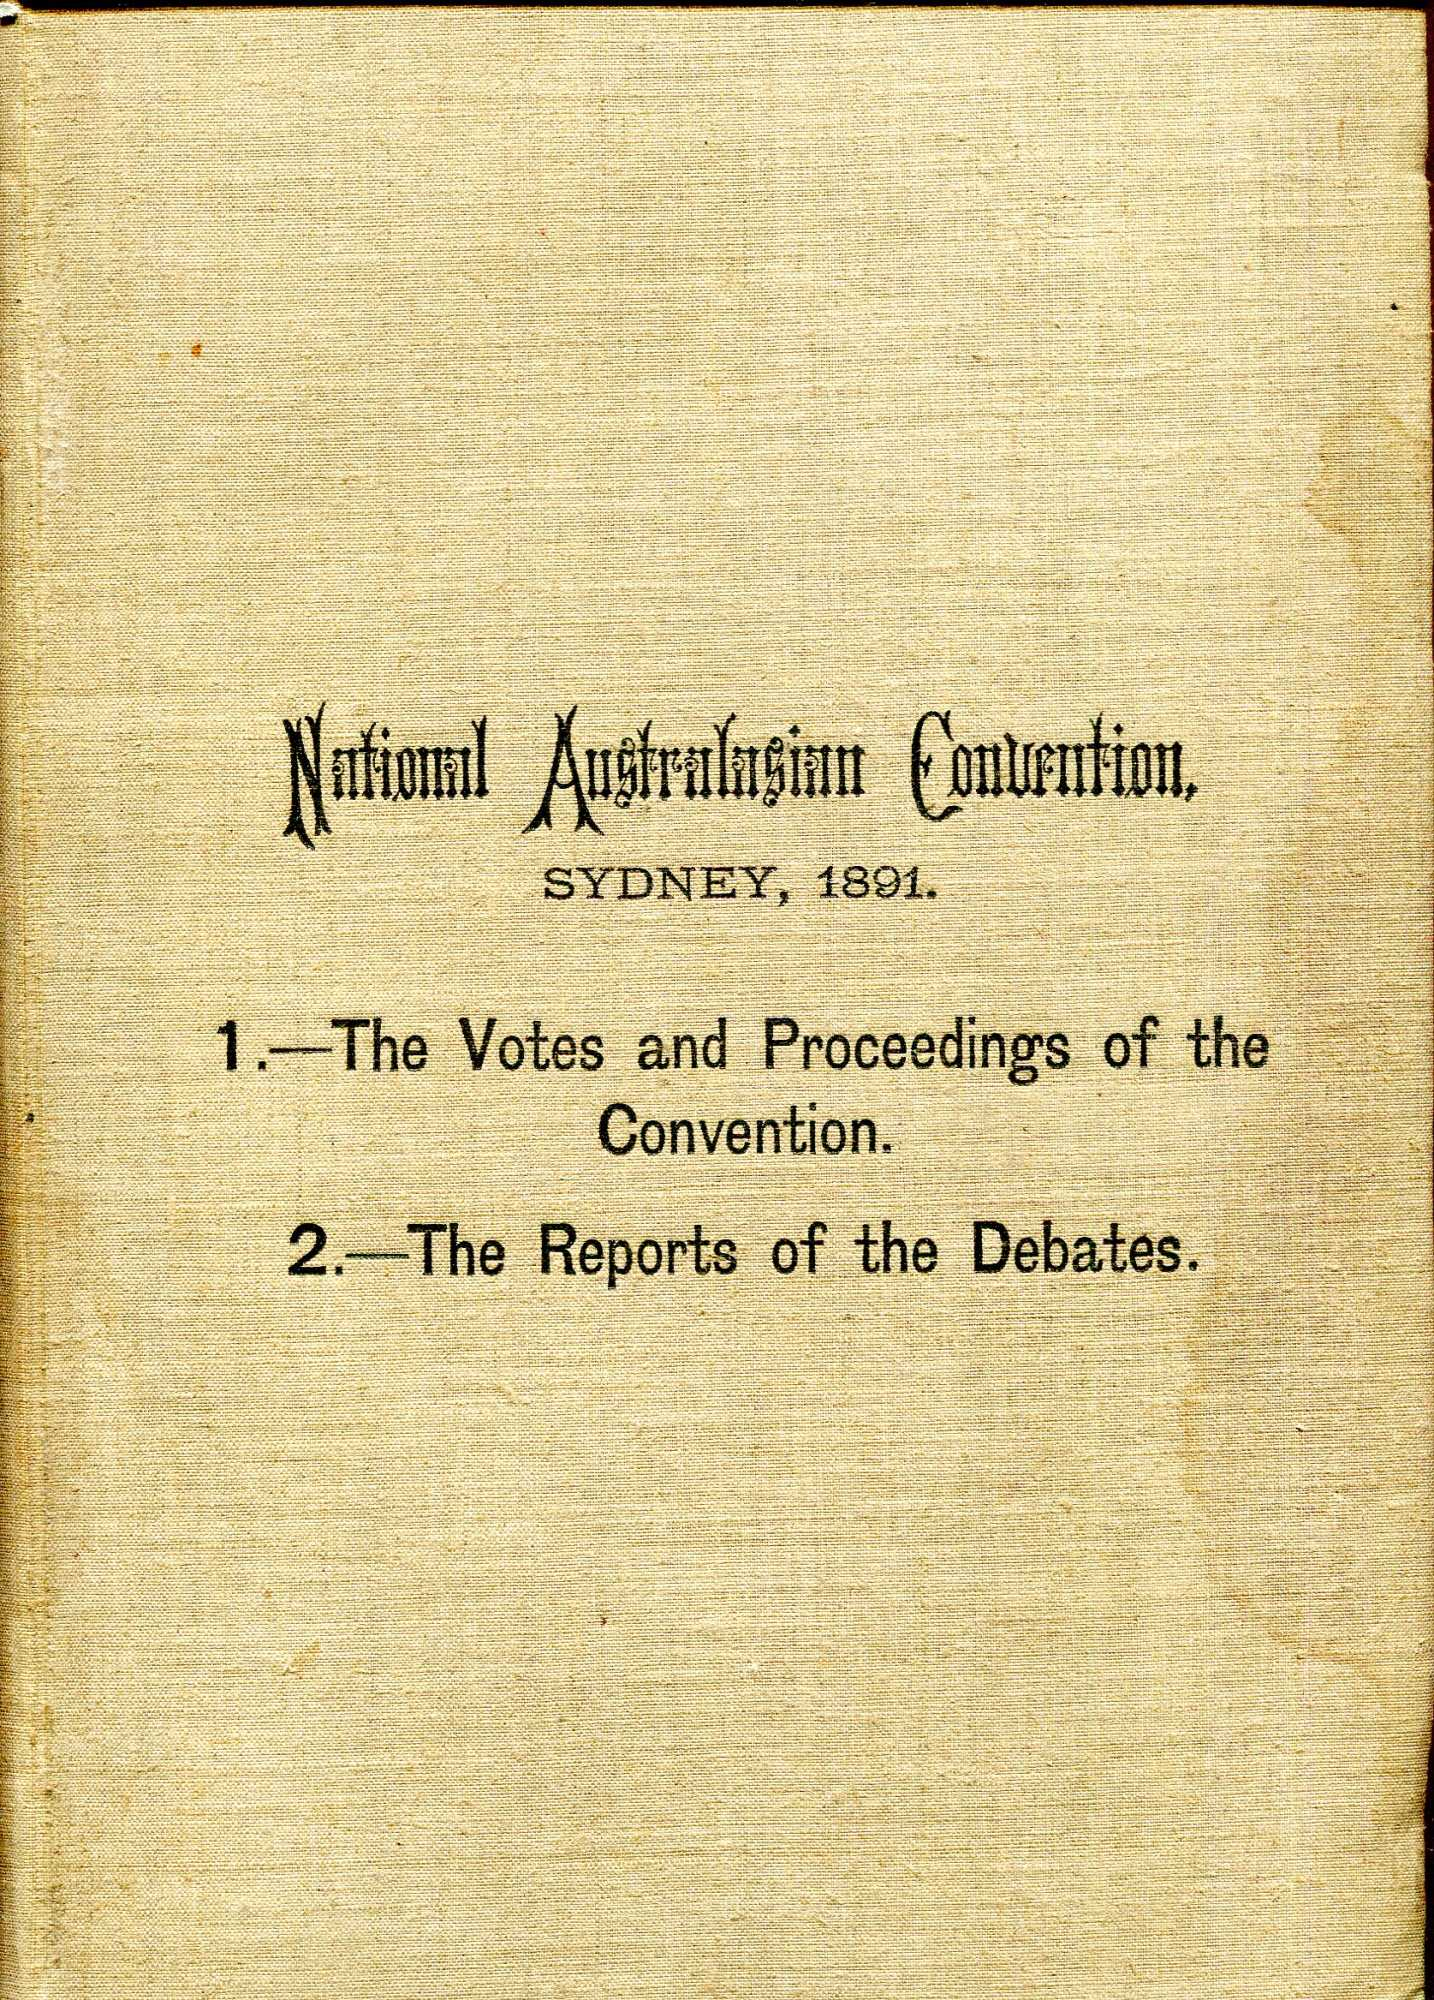 Image for Official Record of the Proceedings and Debates of the National Australasian Convention held in the Parliament House, Sydeney, March & April, 1891